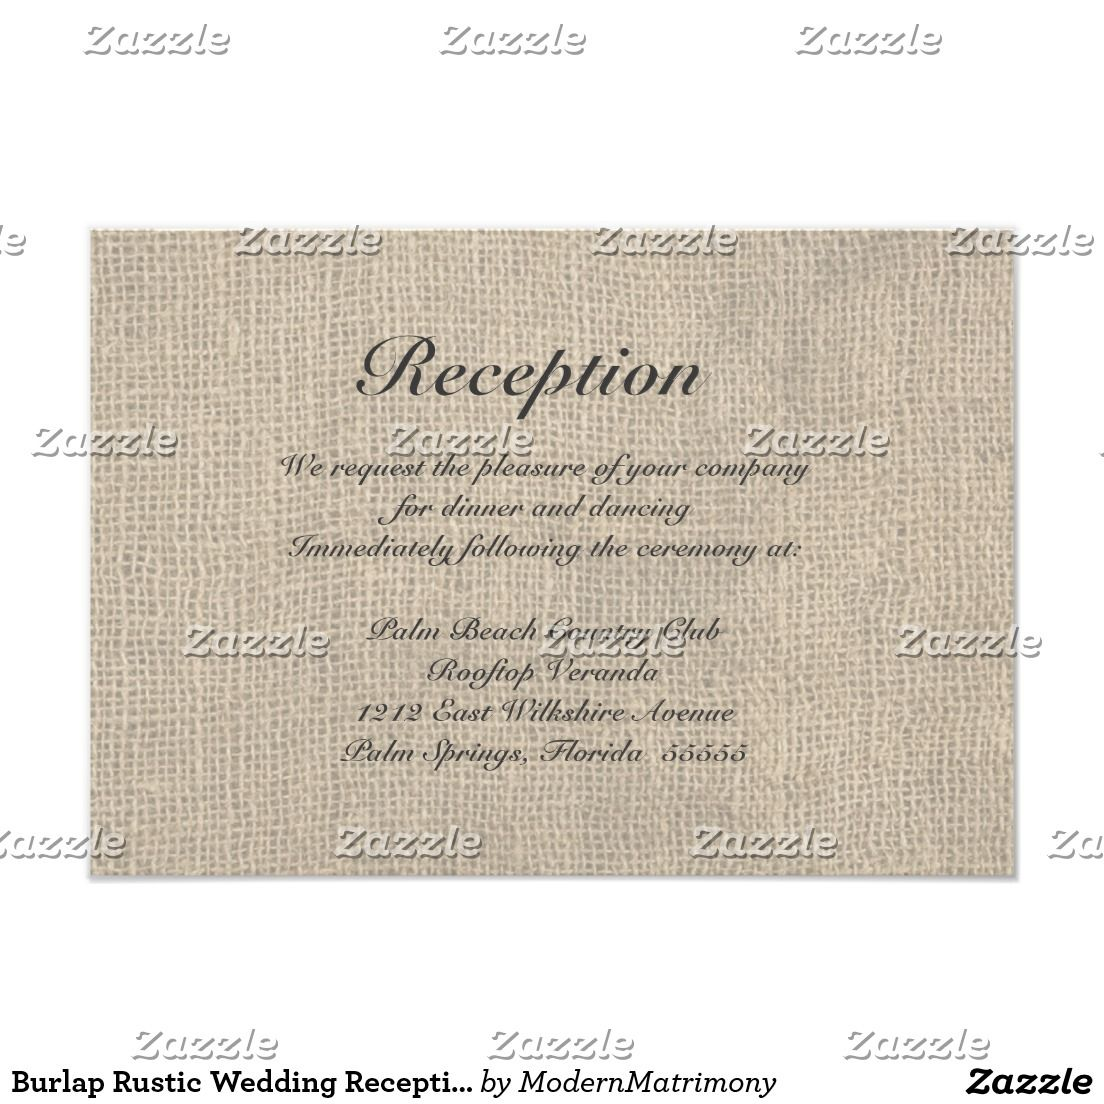 Burlap rustic wedding reception directions card perfect weddings